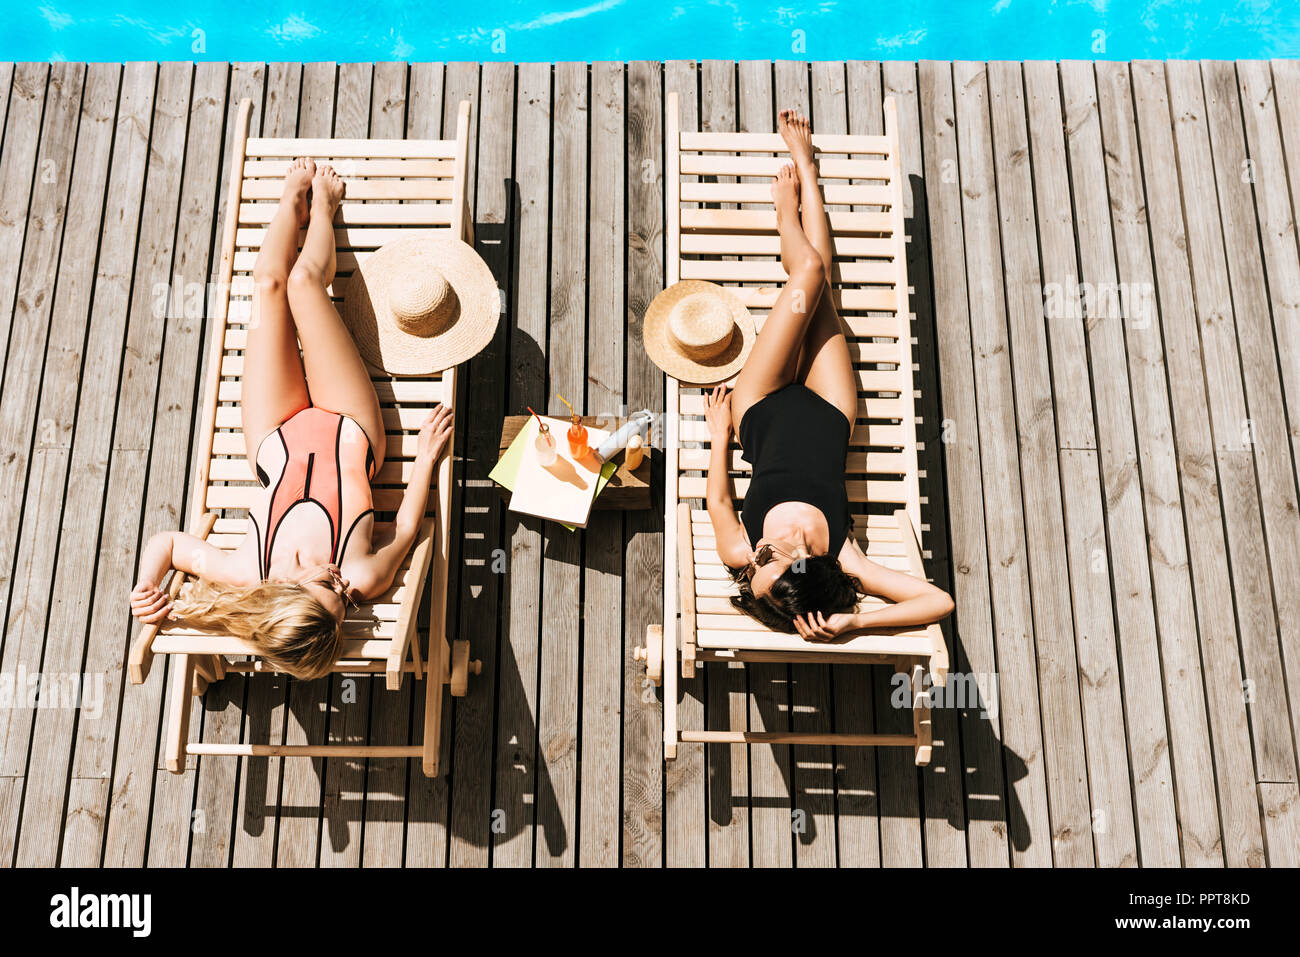 top view of young women tanning on chaise lounges near swimming pool - Stock Image